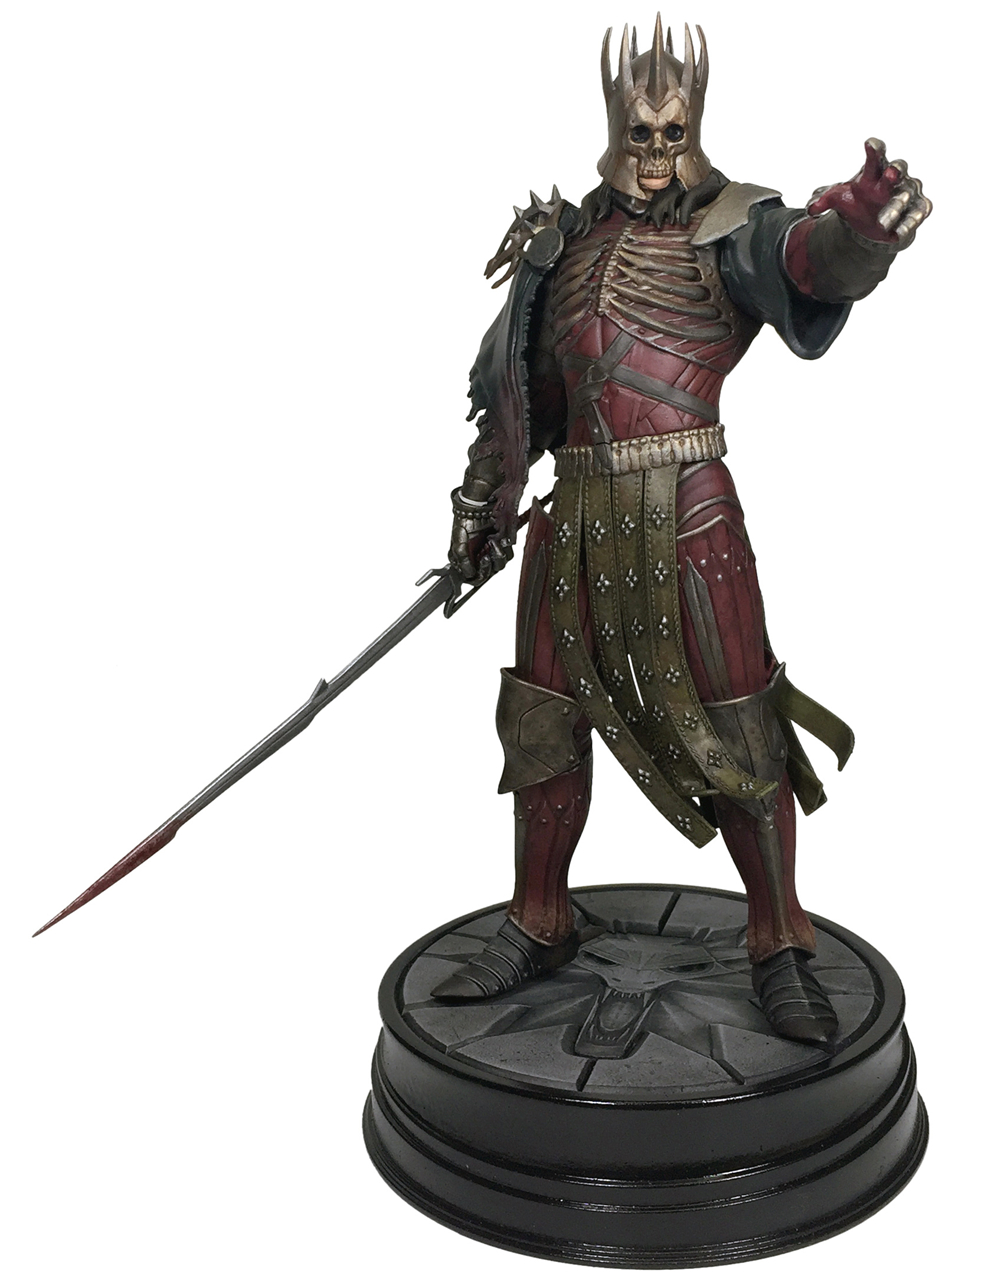 The Witcher 3 - Wild Hunt: King Eredin Figure Dark Horse The Witcher PVC Game Figure Collection Model Toy электронная версия для xbox microsoft the witcher 3 wild hunt game of the year edition